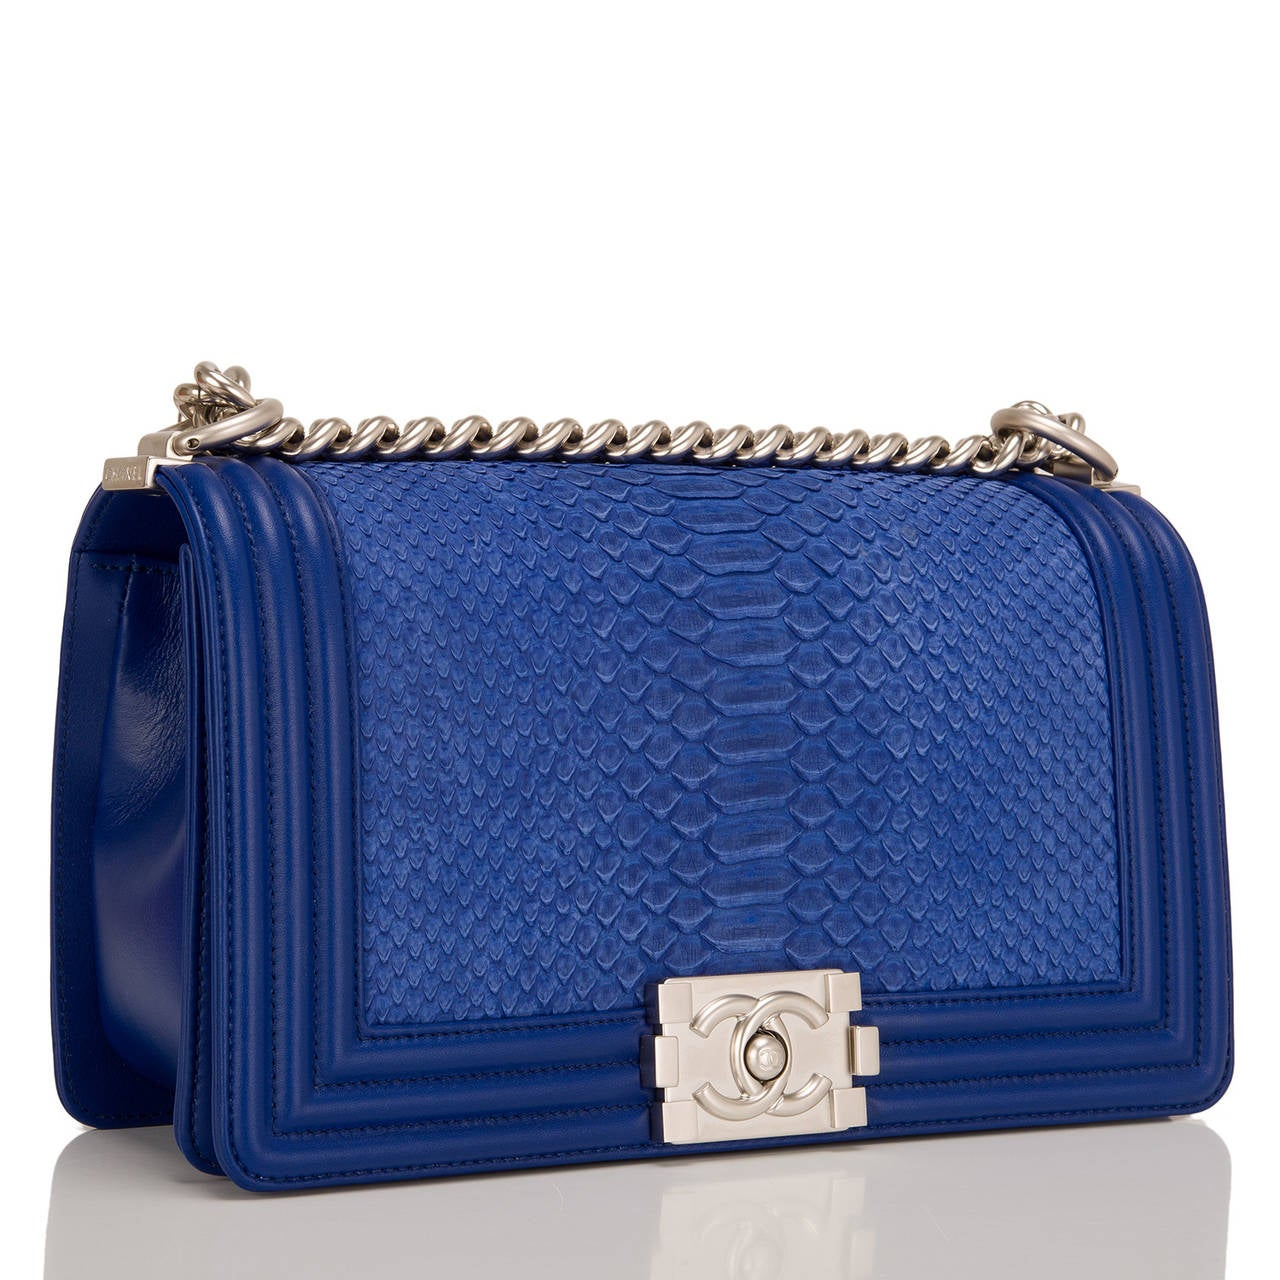 This Chanel blue python Medium Boy bag features beautiful blue python skin and matte silver tone hardware with blue lambskin trim. This Chanel bag is in the classic Boy style with a full front flap with the Boy signature CC push lock closure detail